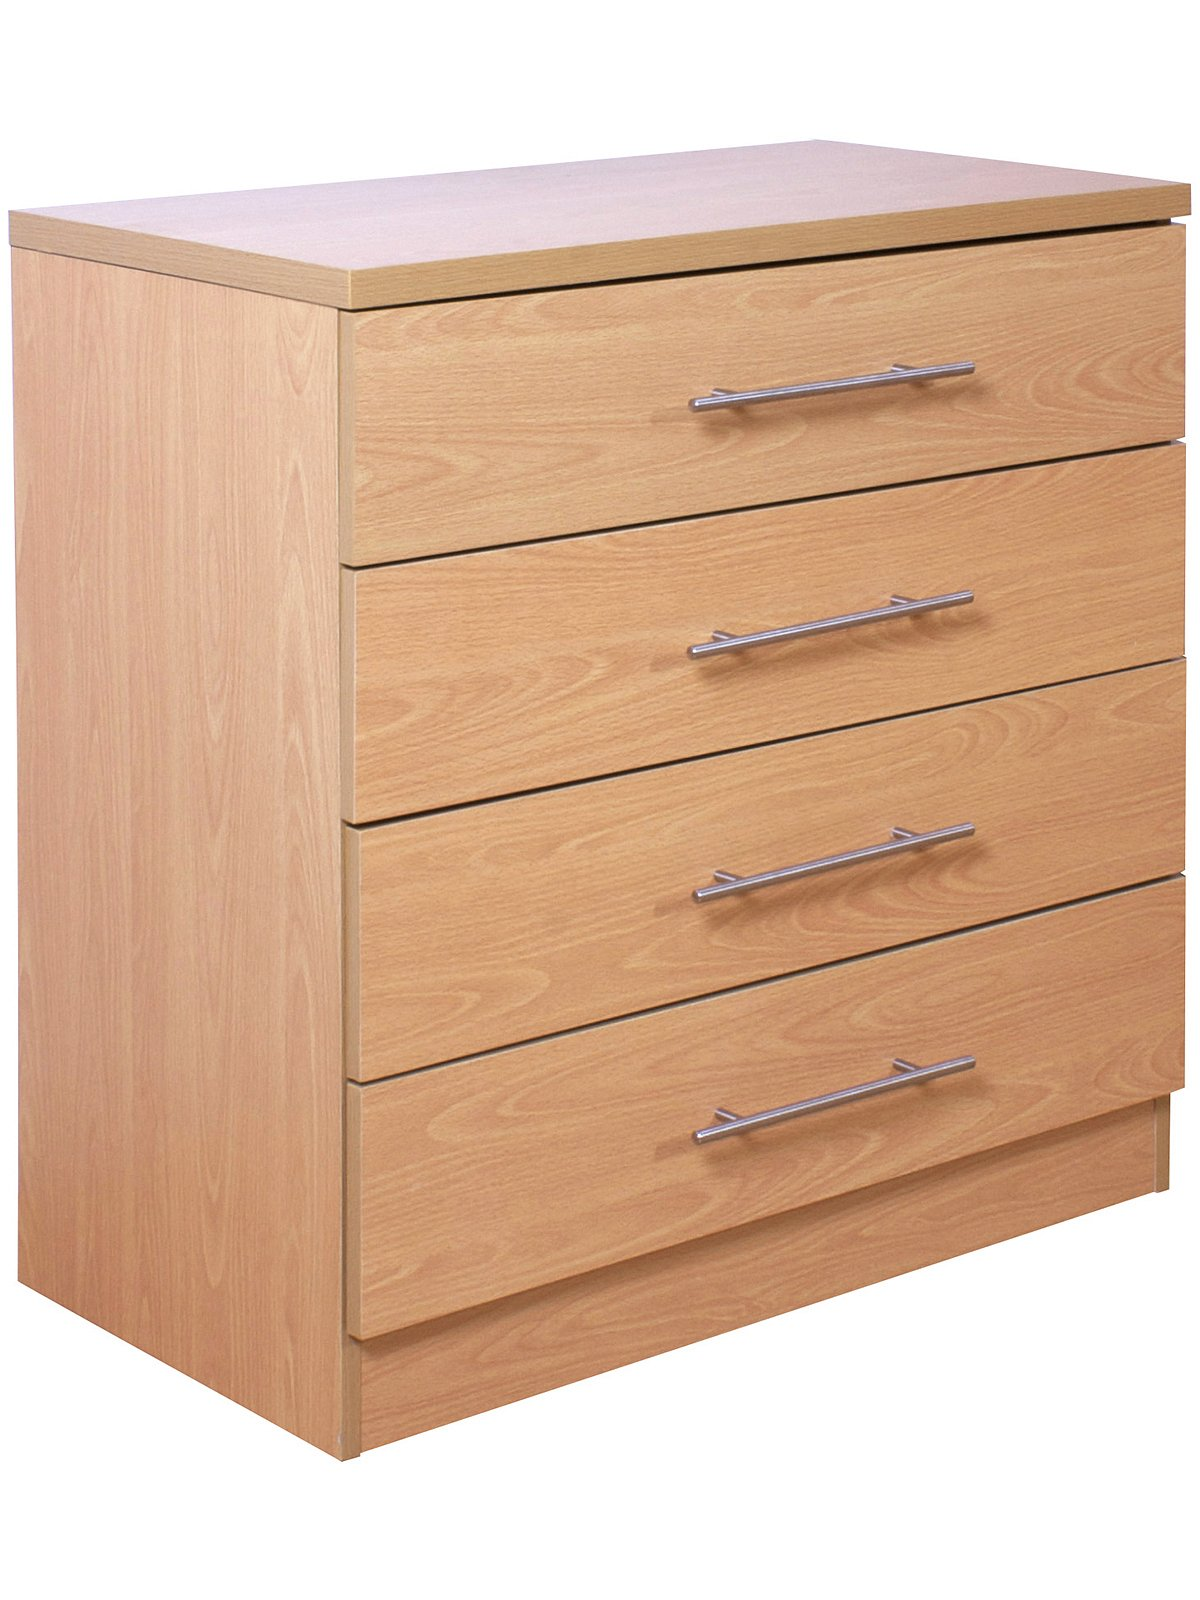 linen image four prod dresser white chest clothes for product belmont storage bedroom drawers furniture cabinet drawer upc